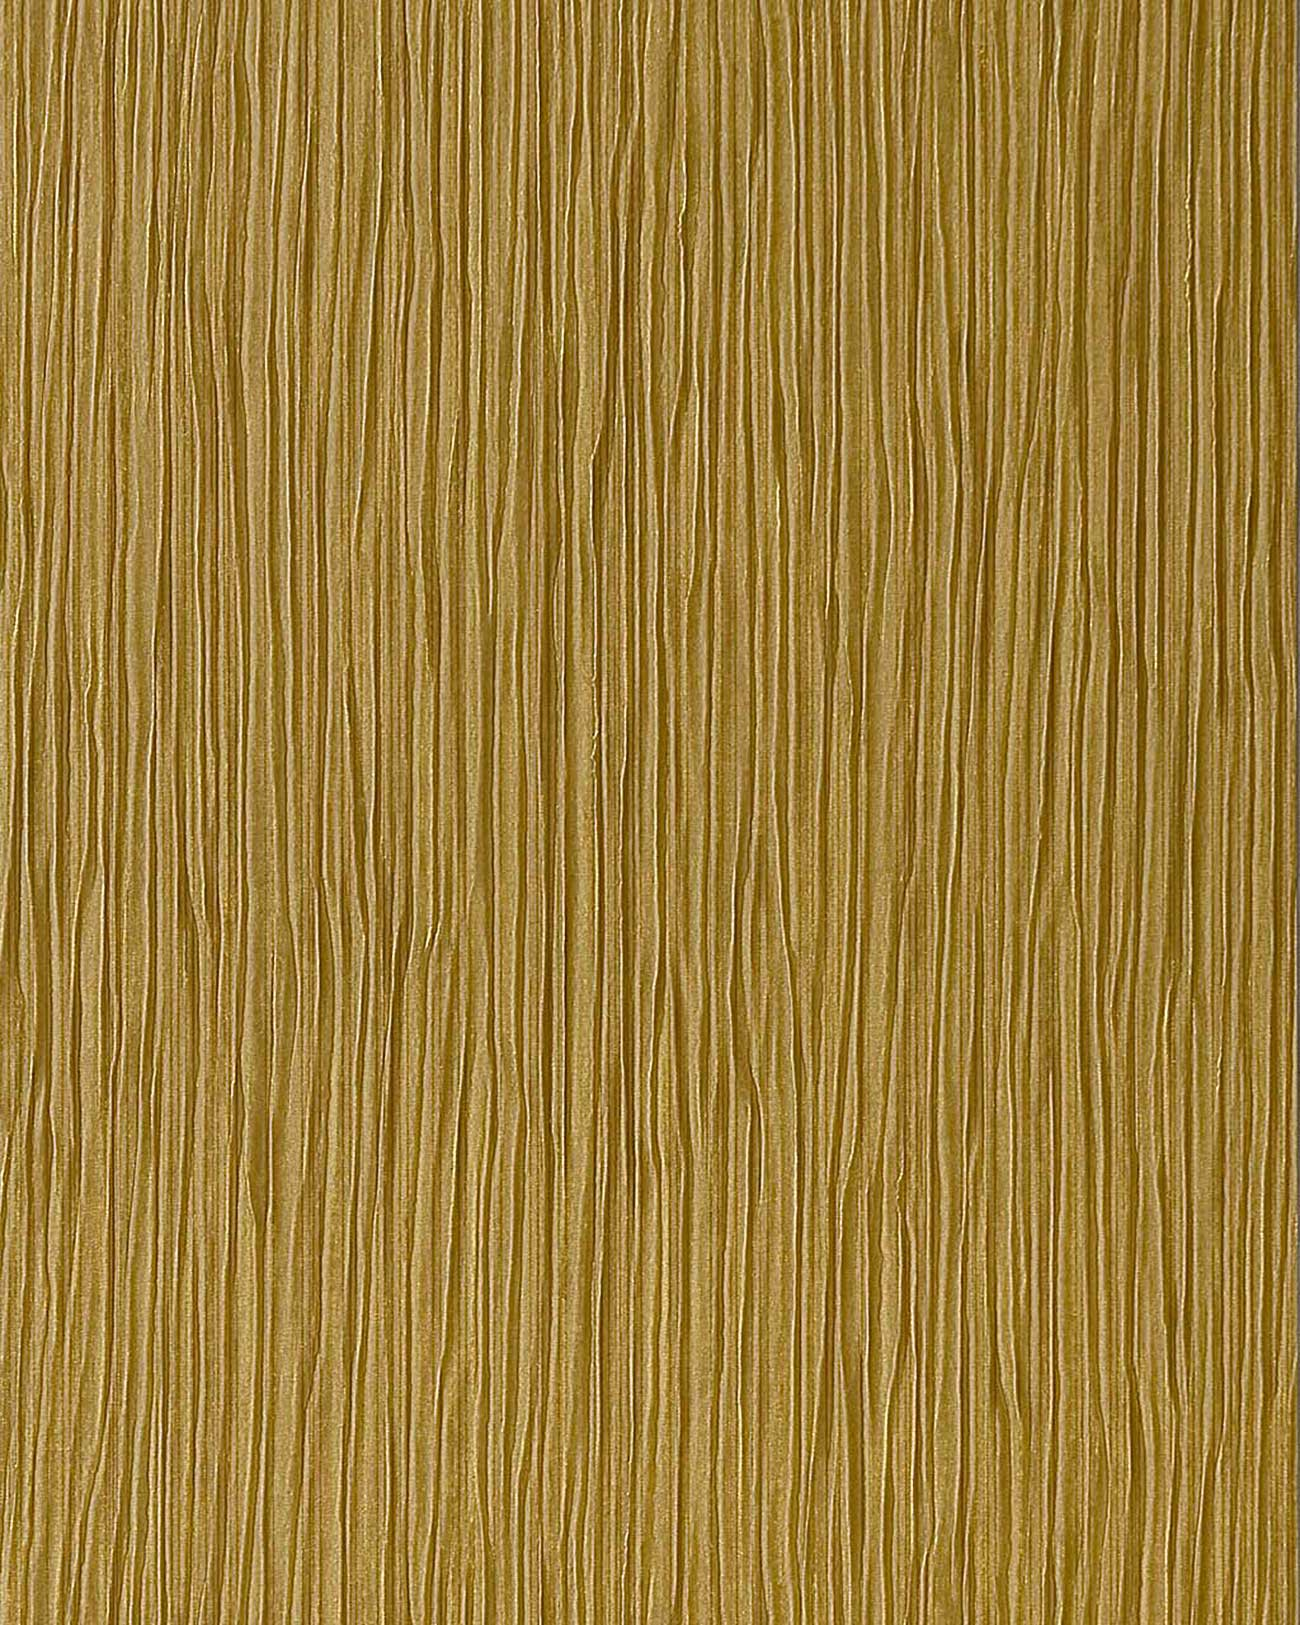 weight vinyl wallpaper stripe bronze olive gold 533 sqm 57 sq ft 1300x1625